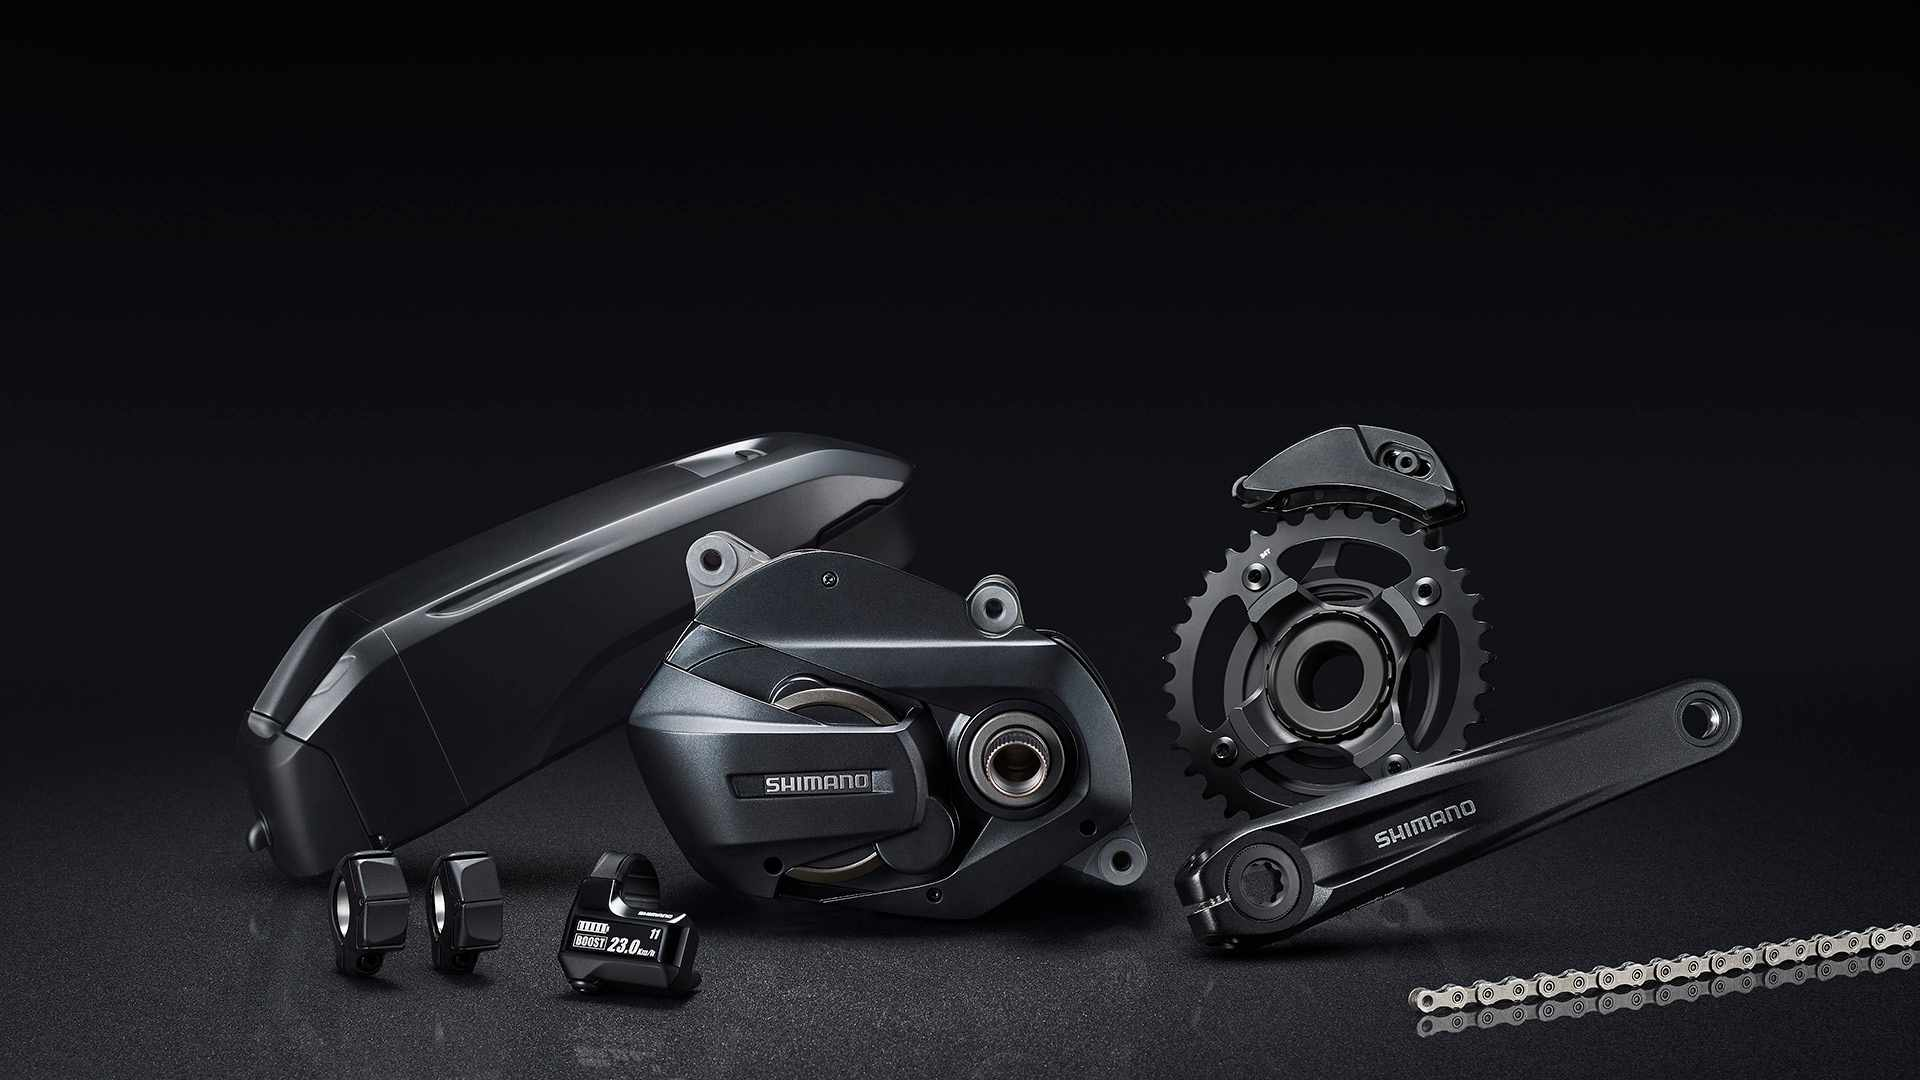 The new Shimano Steps E7000 groupset sits around SLX level in the e-MTB world